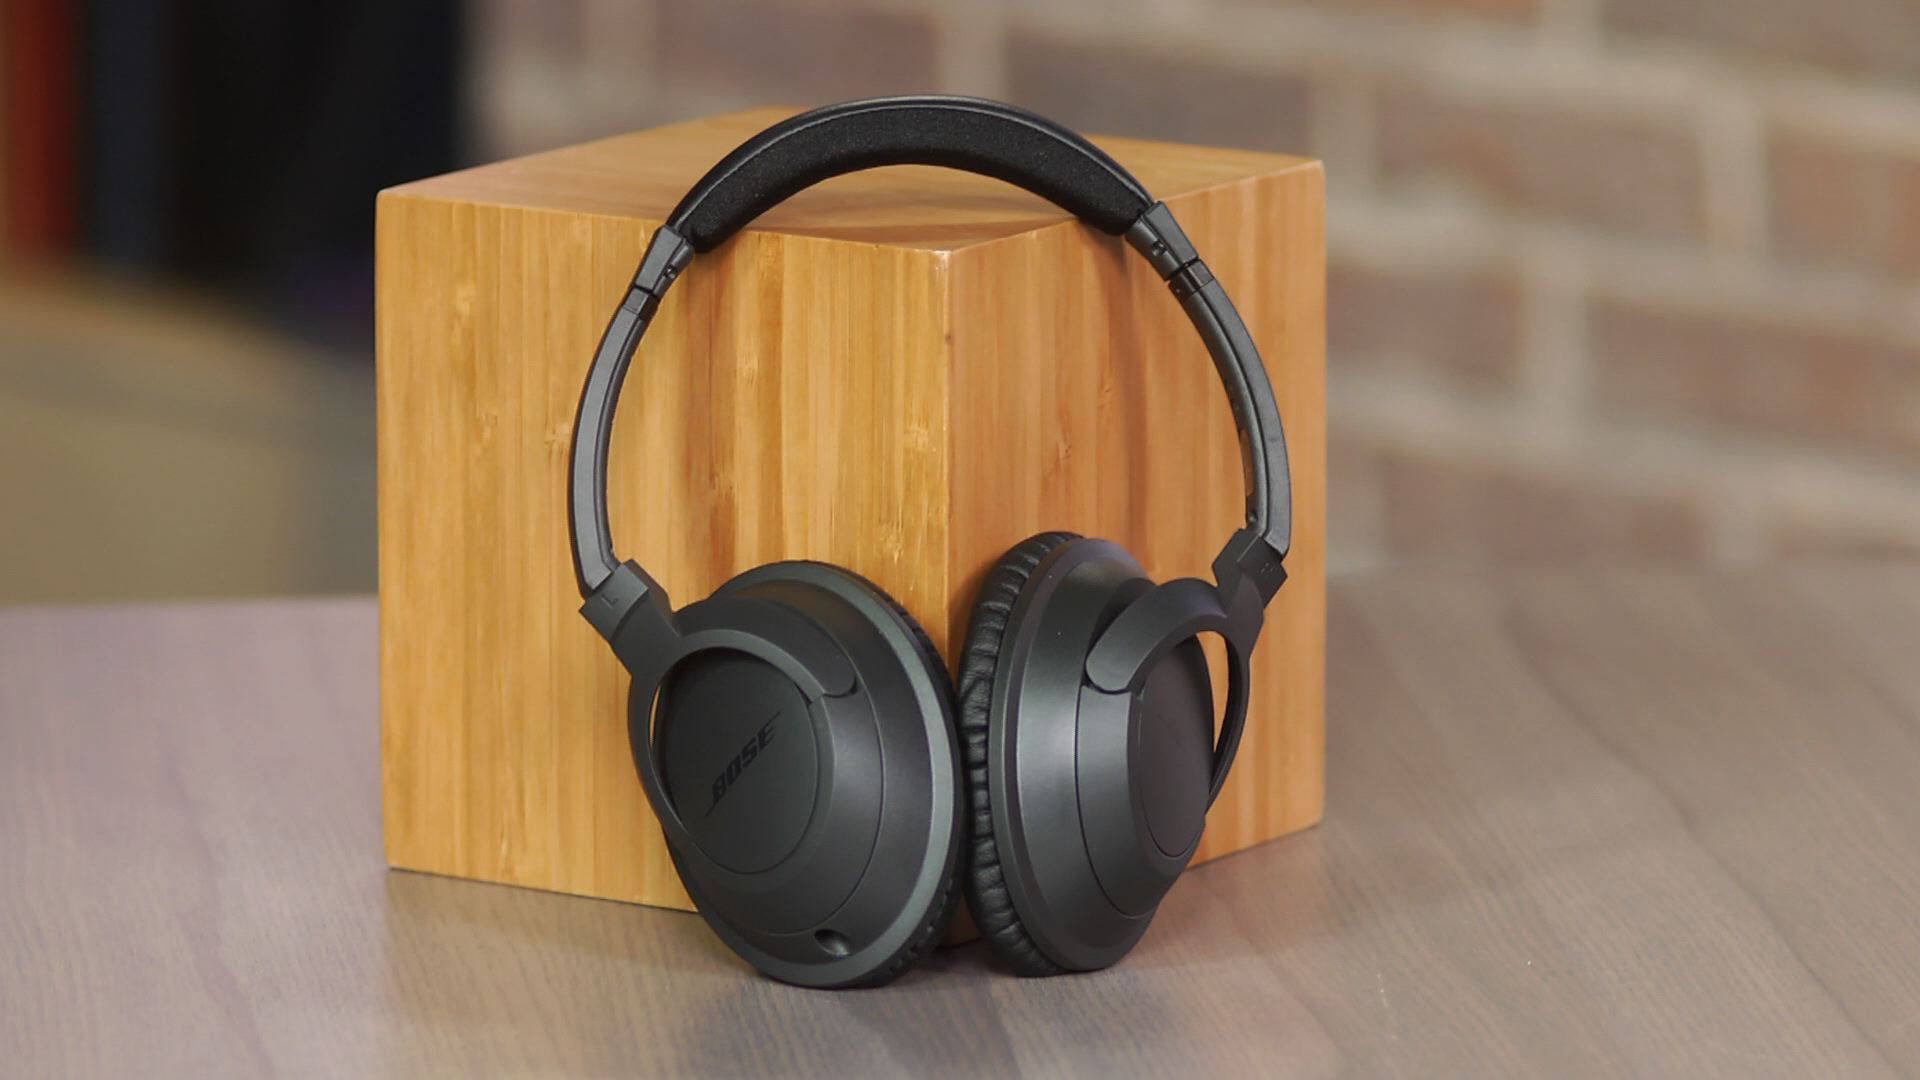 Video: Bose SoundTrue Around-Ear: A classic headphone gets a cosmetic upgrade